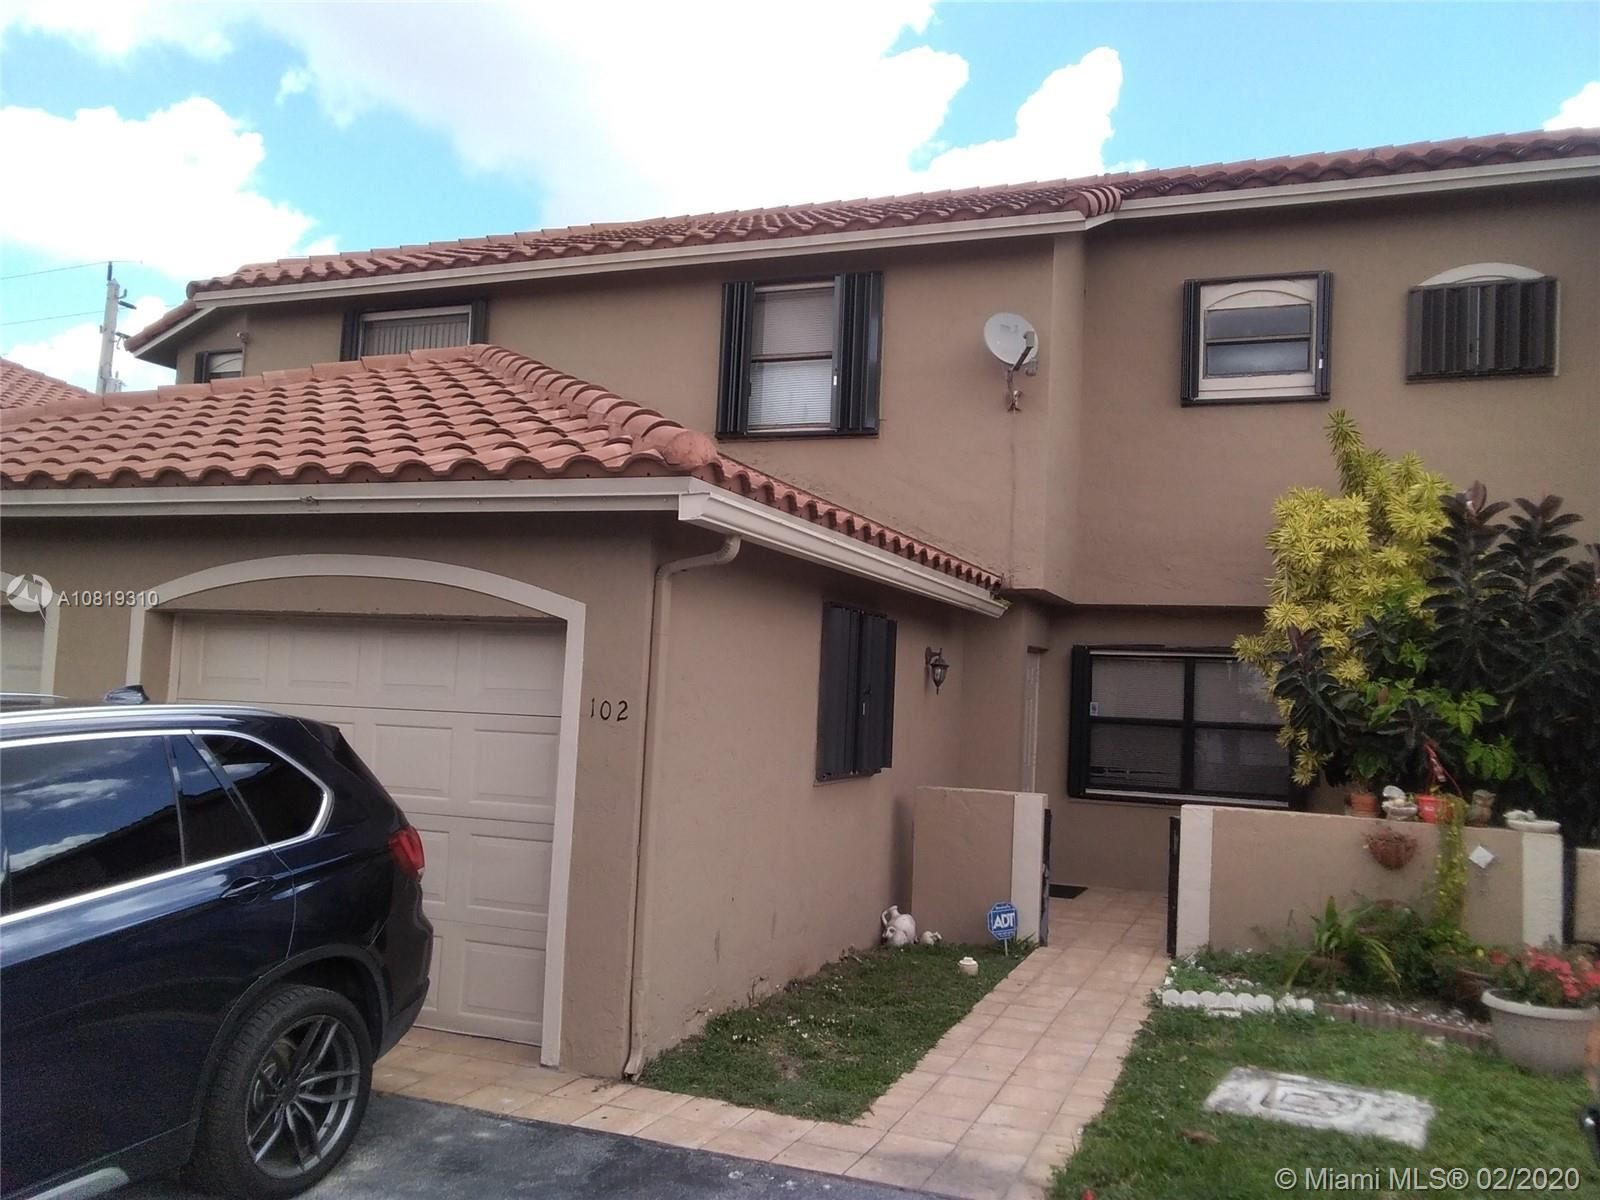 6161 W 24th Ct, Hialeah, FL 33016 - #: A10819310